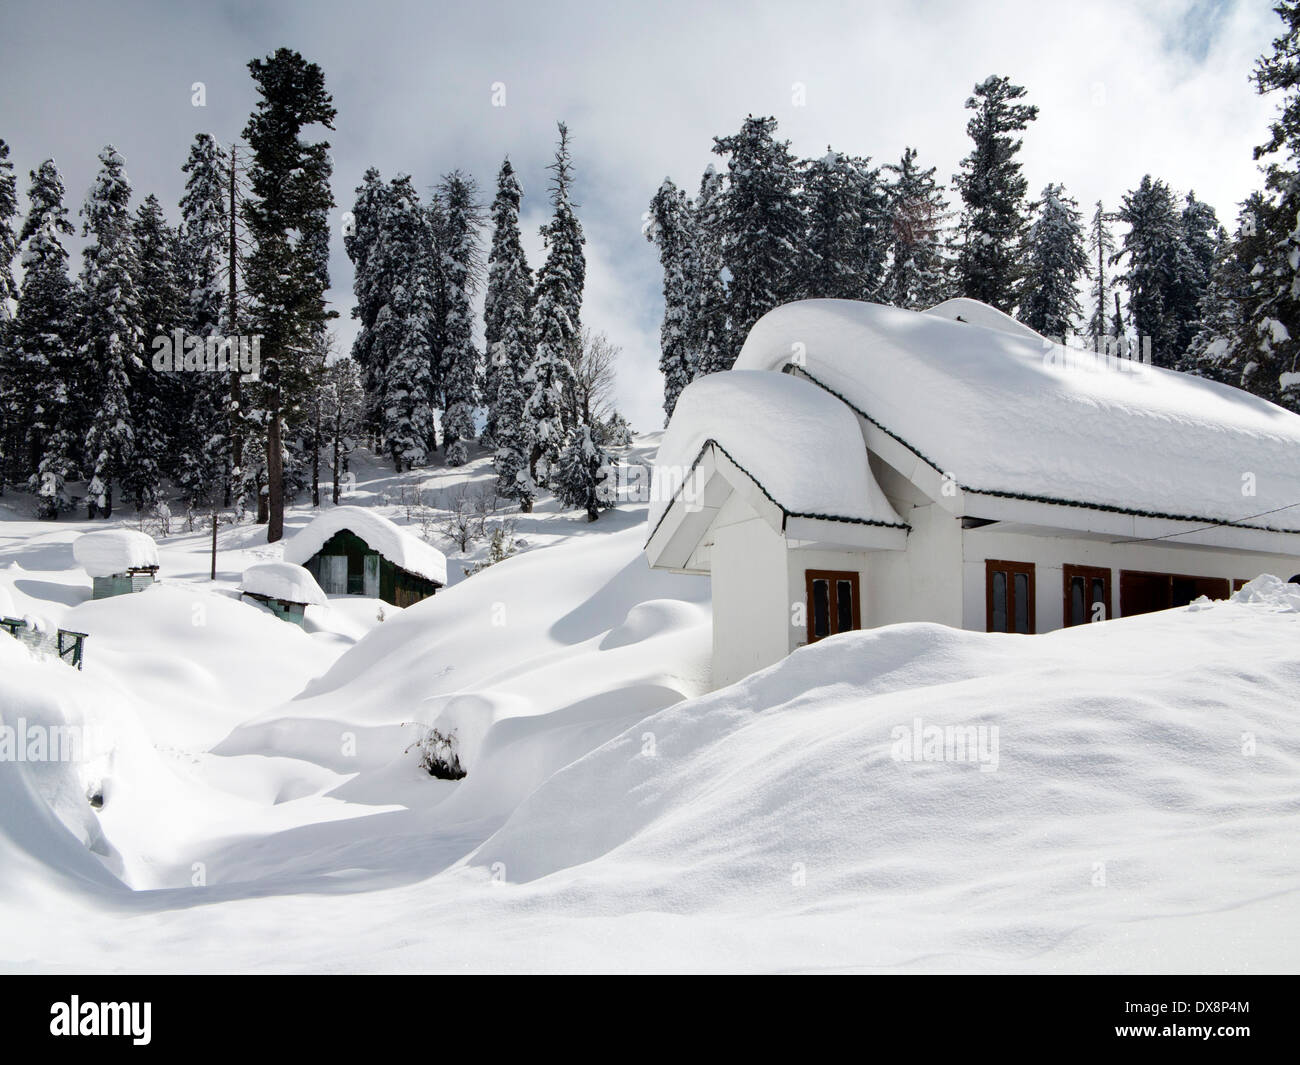 India kashmir gulmarg himalayan ski resort houses almost buried in heavy snowfall